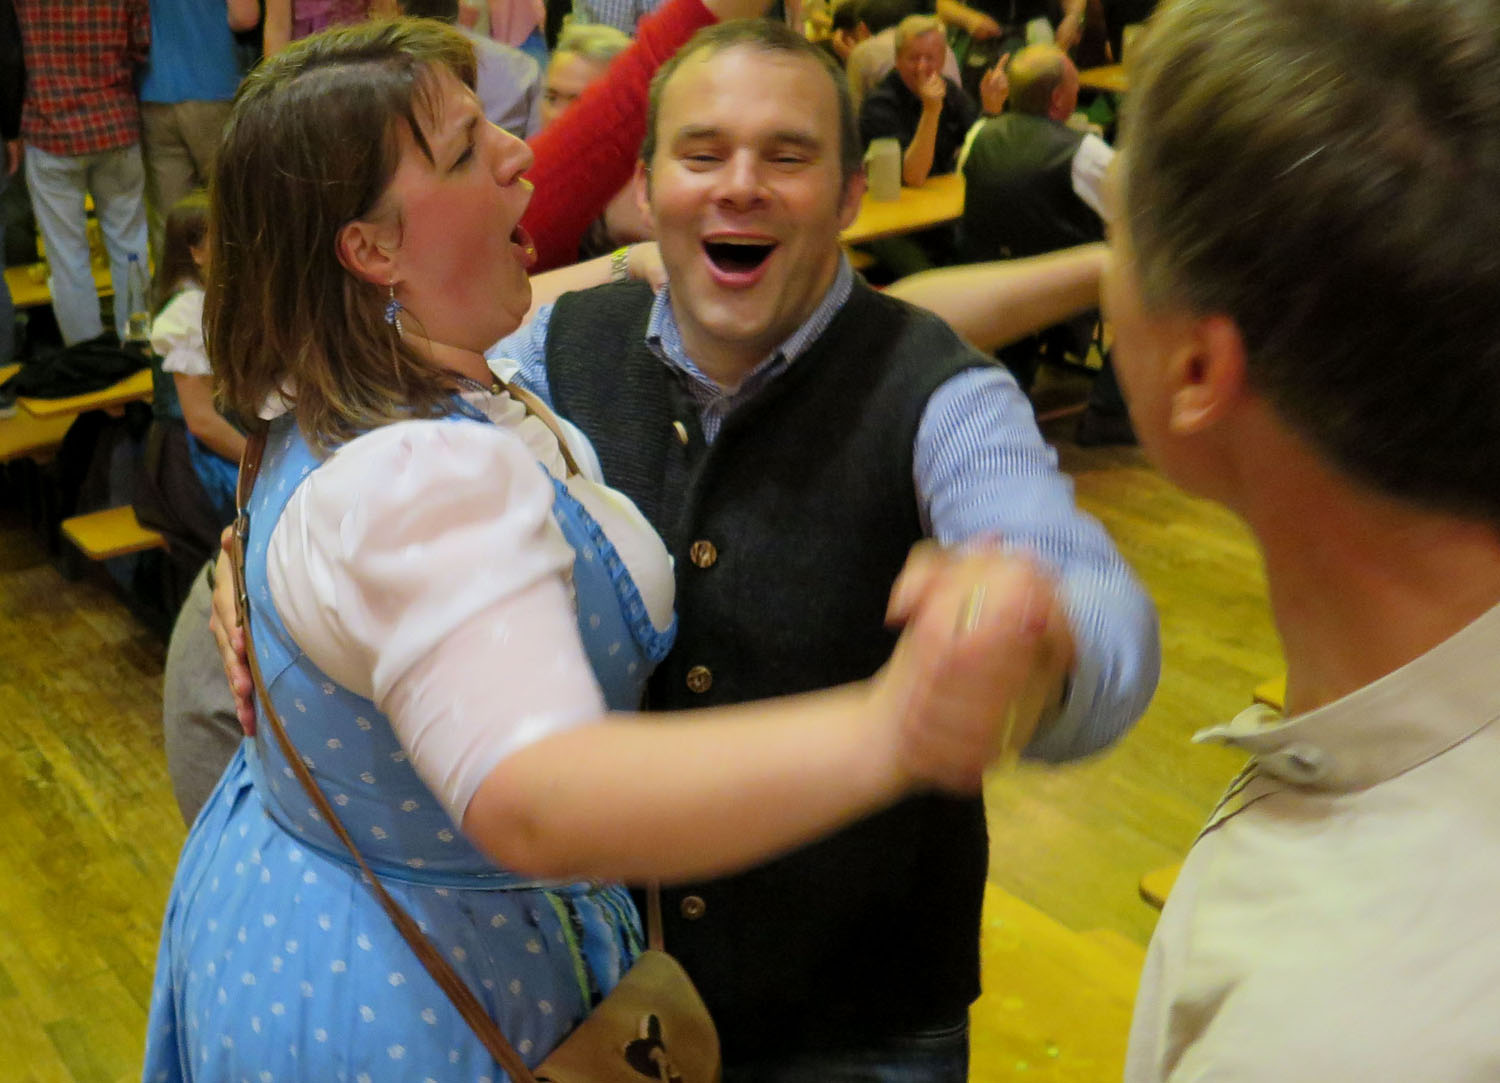 Germany-Munich-Starkbierfest